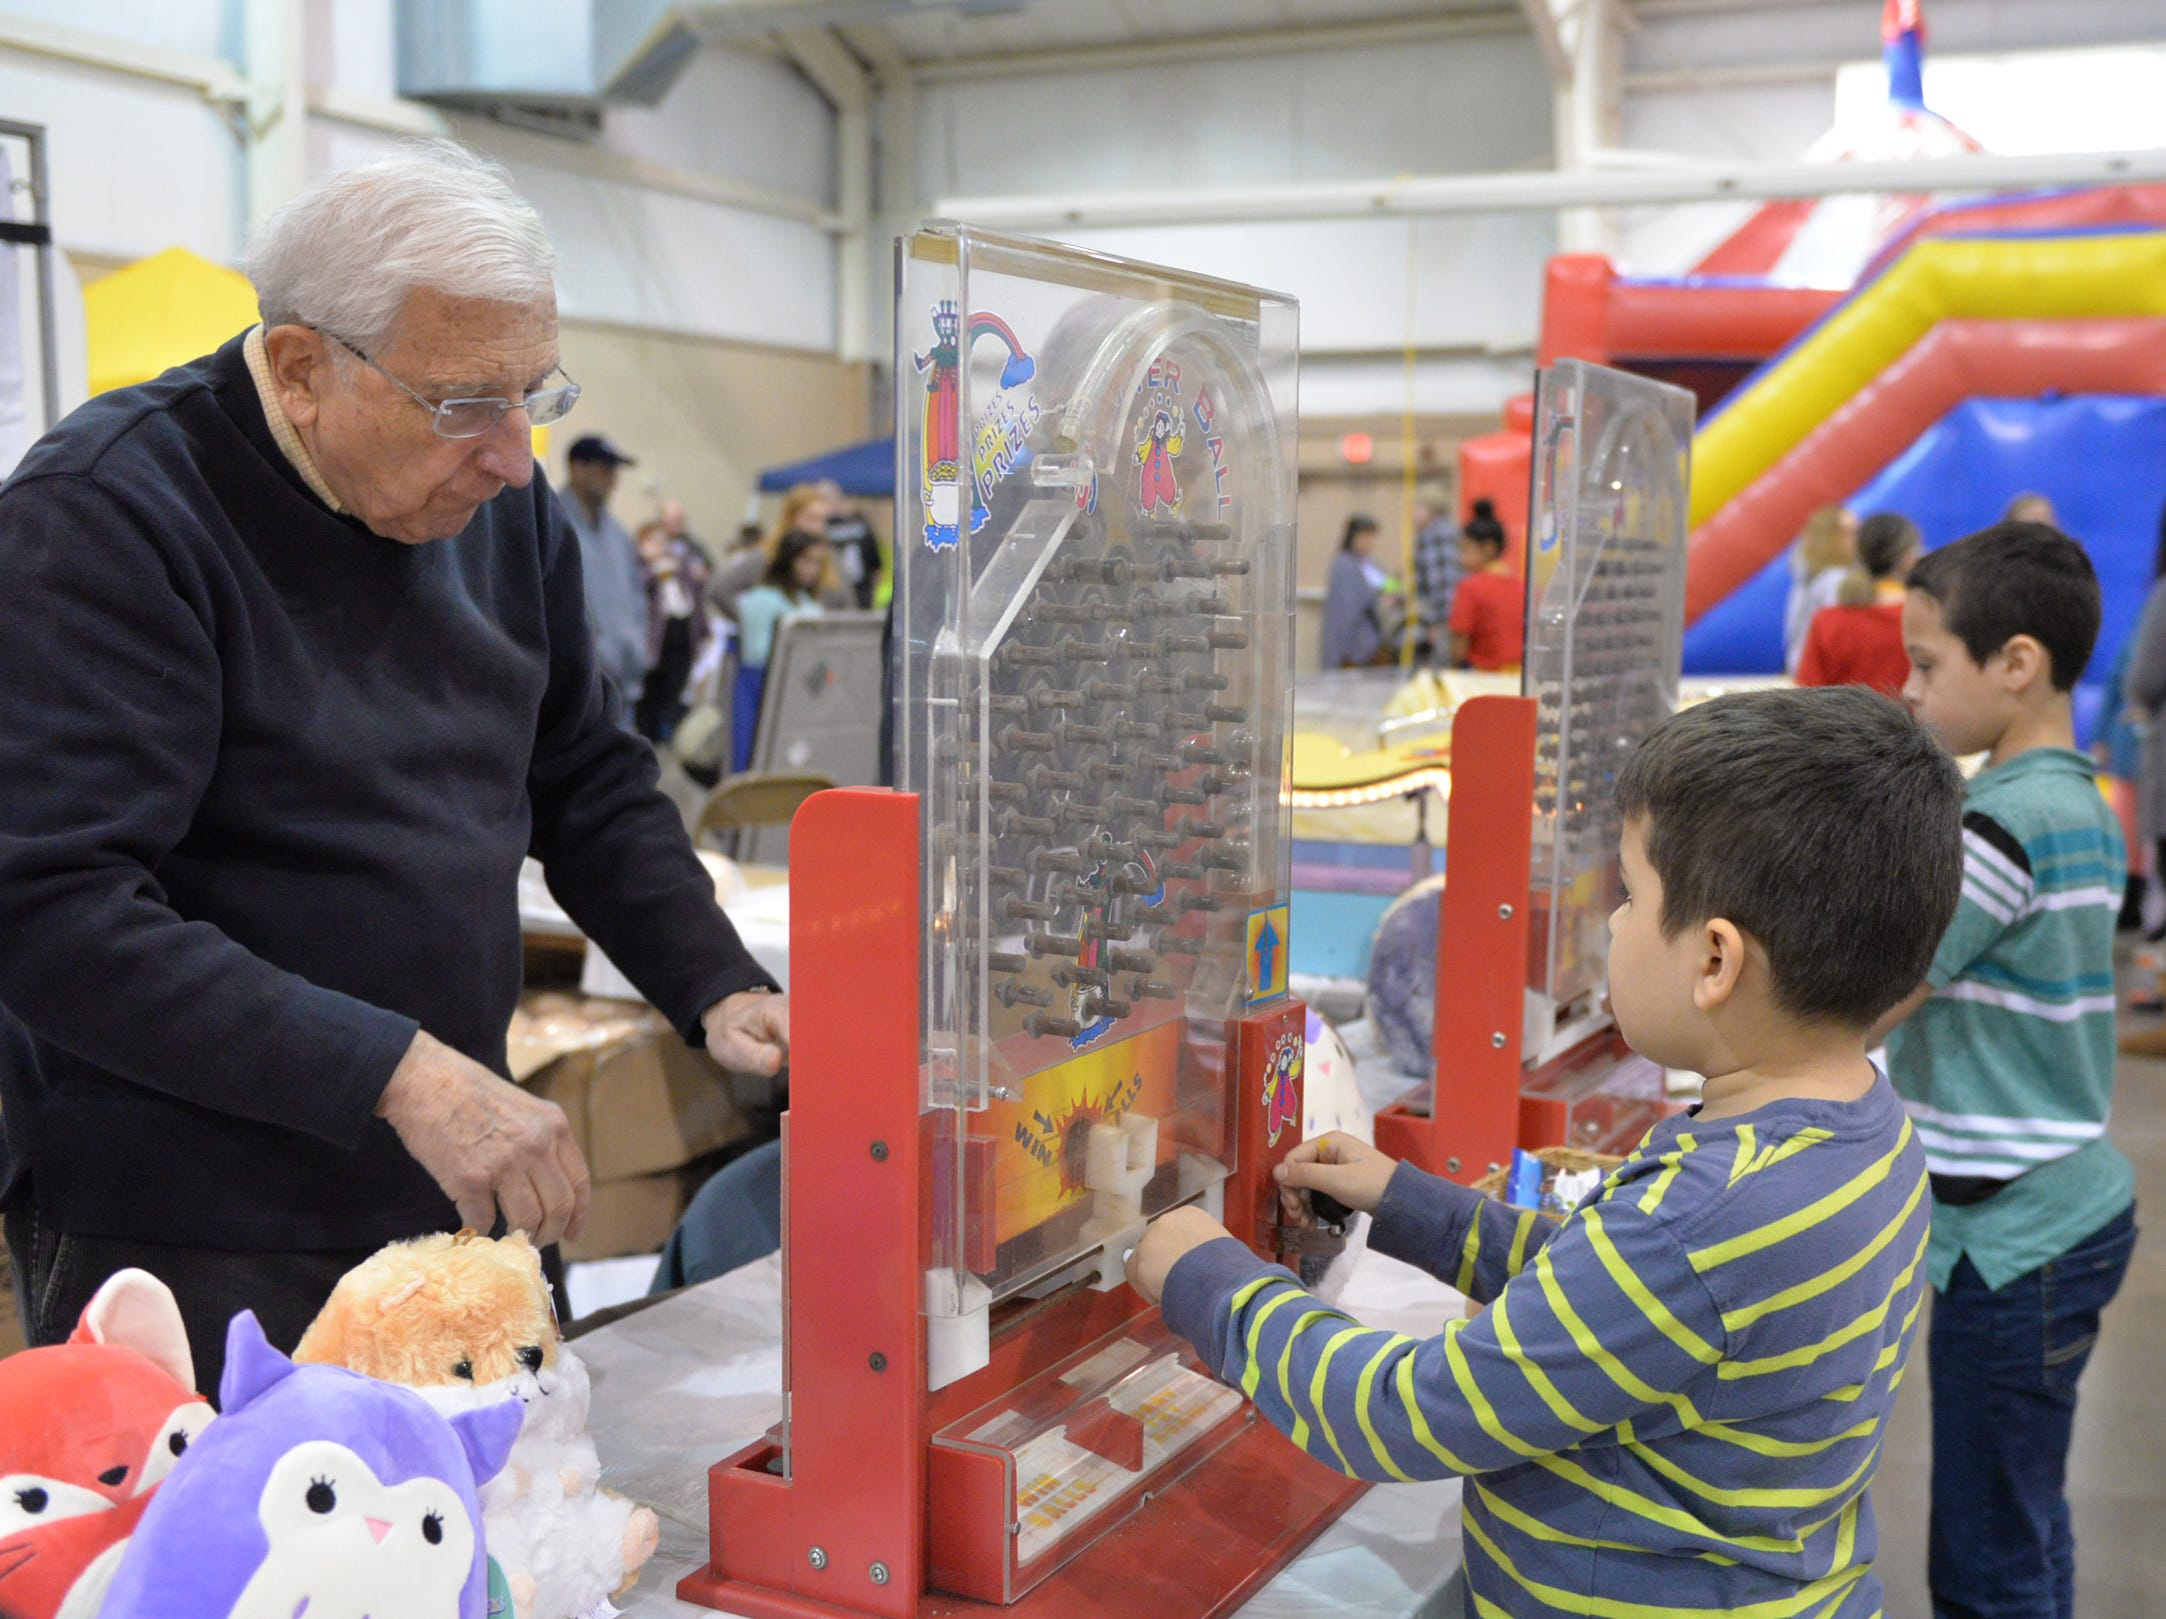 The Lebanon Rotary Club's Bologna Fest & Winter Carnival held on Saturday, January 26 at the Lebanon Valley Expo Center.